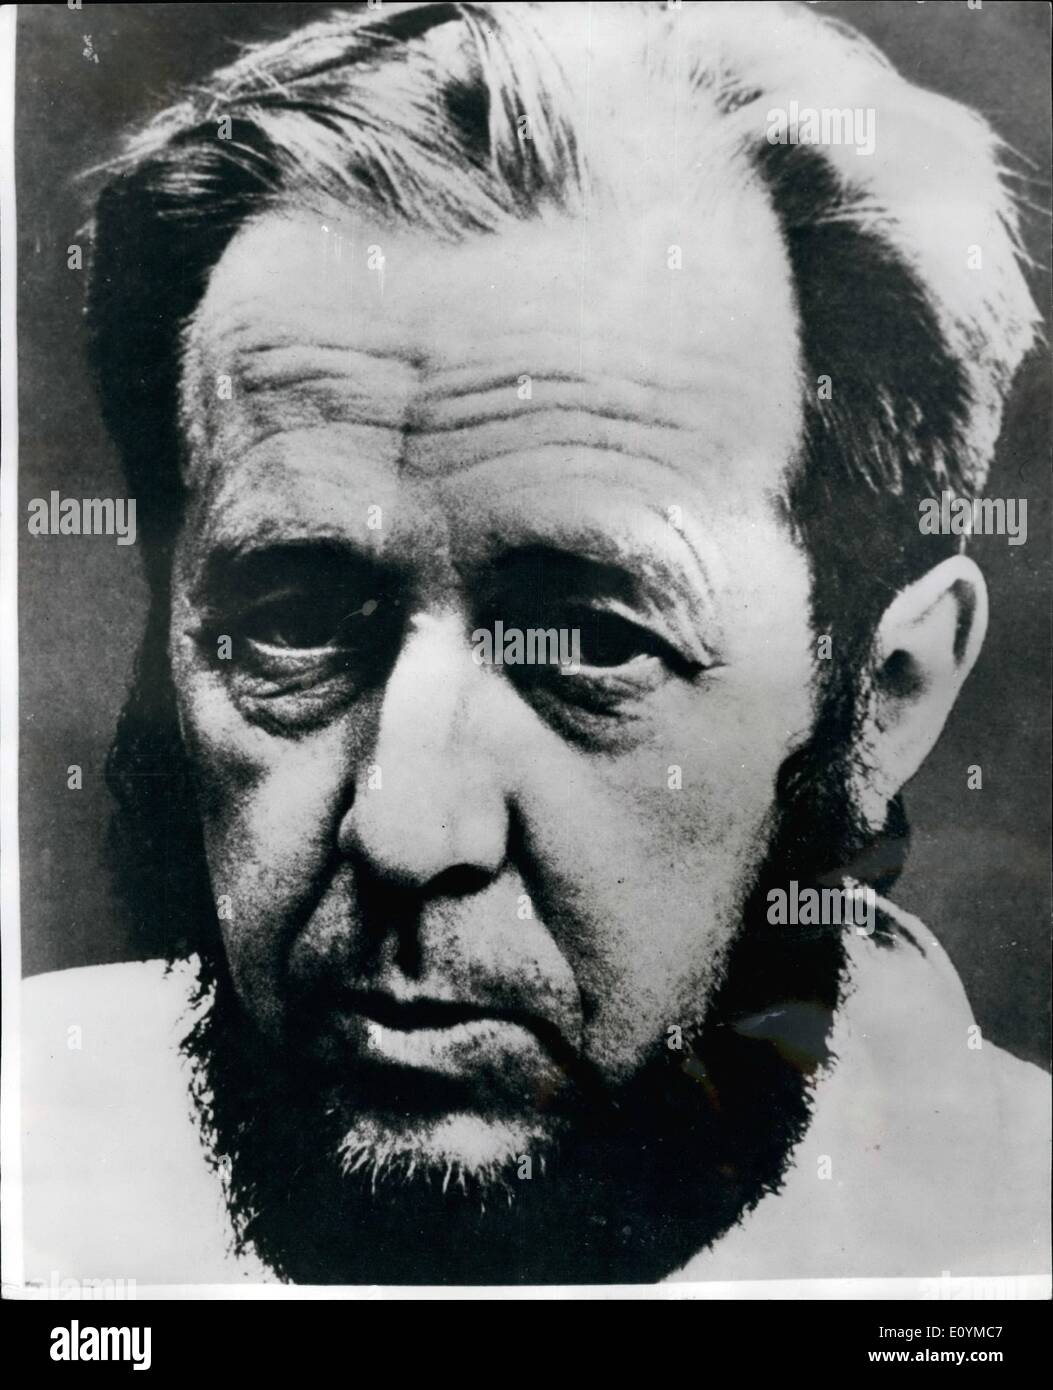 Oct. 08, 1970 - October 8th - 1970 . Rebel Russian author is awarded the 1970 Nobel Prize in Literature . The Swedish Academy awarded the 1970 Nobel Prize in the Literature yesterday to the 51 year old rebel Russian writer Alexander Solzhenitysn , author of ''Cancer Ward'' , ''The First Circle'' and ''One Day in the life of Ivan Denisovich''. The prize of ?32, 000 was given ''for the ethical force with which he has puraued the indispensable tradition of Russian literature ''. Photo shows Alexander Solzhenitsyn awarded the 1970 Nobel Prize in literature. - Stock Image